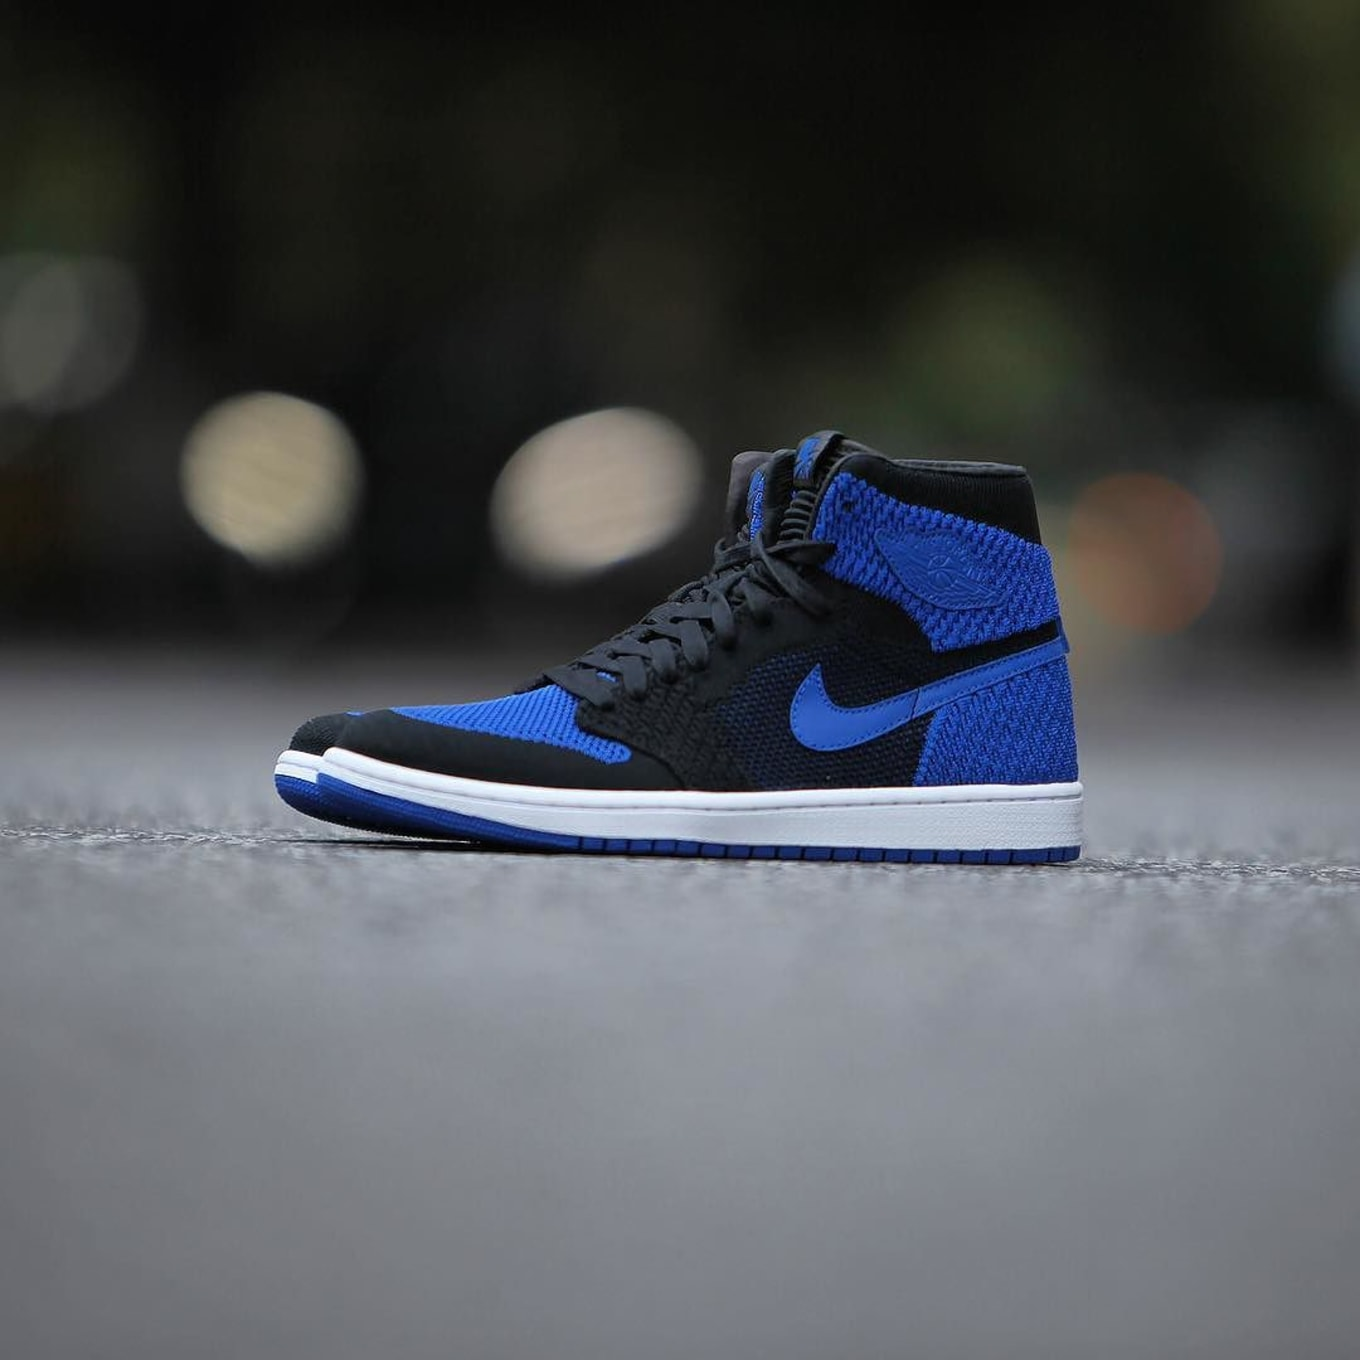 de4e6bab8ed3 A Look at the  Royal  Air Jordan 1 Flyknit From Every Angle